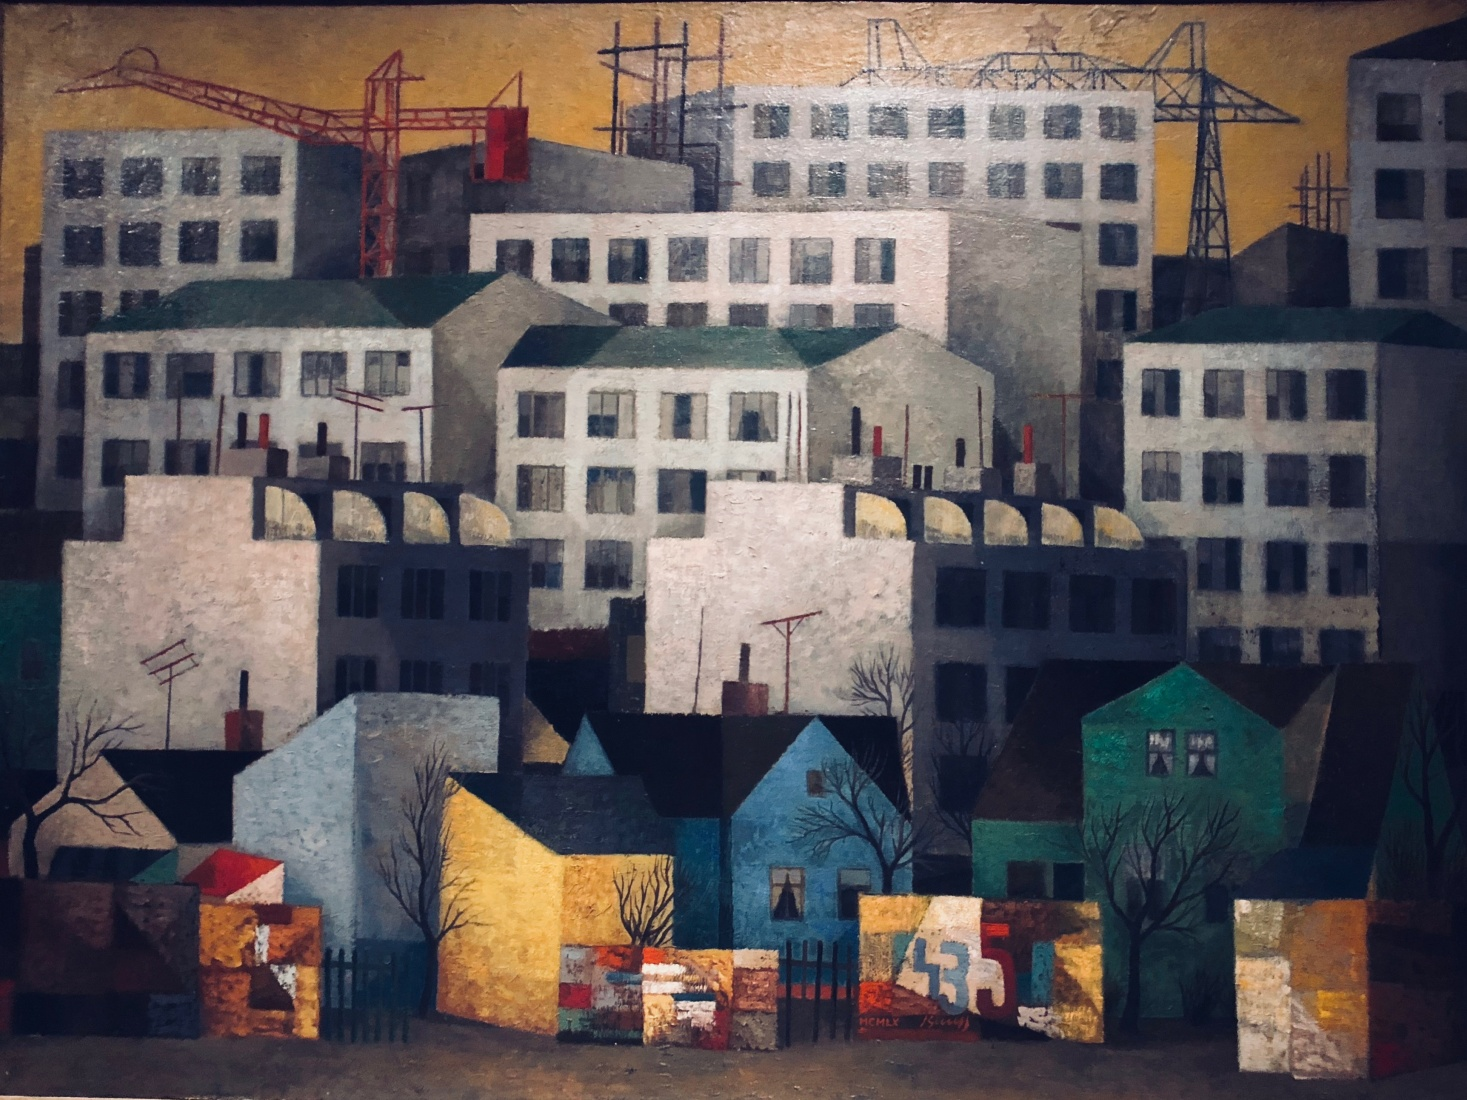 A picture of prefabricated housing blocks from 1960 by Czech painter Vlastimil Beneš (1919-81).